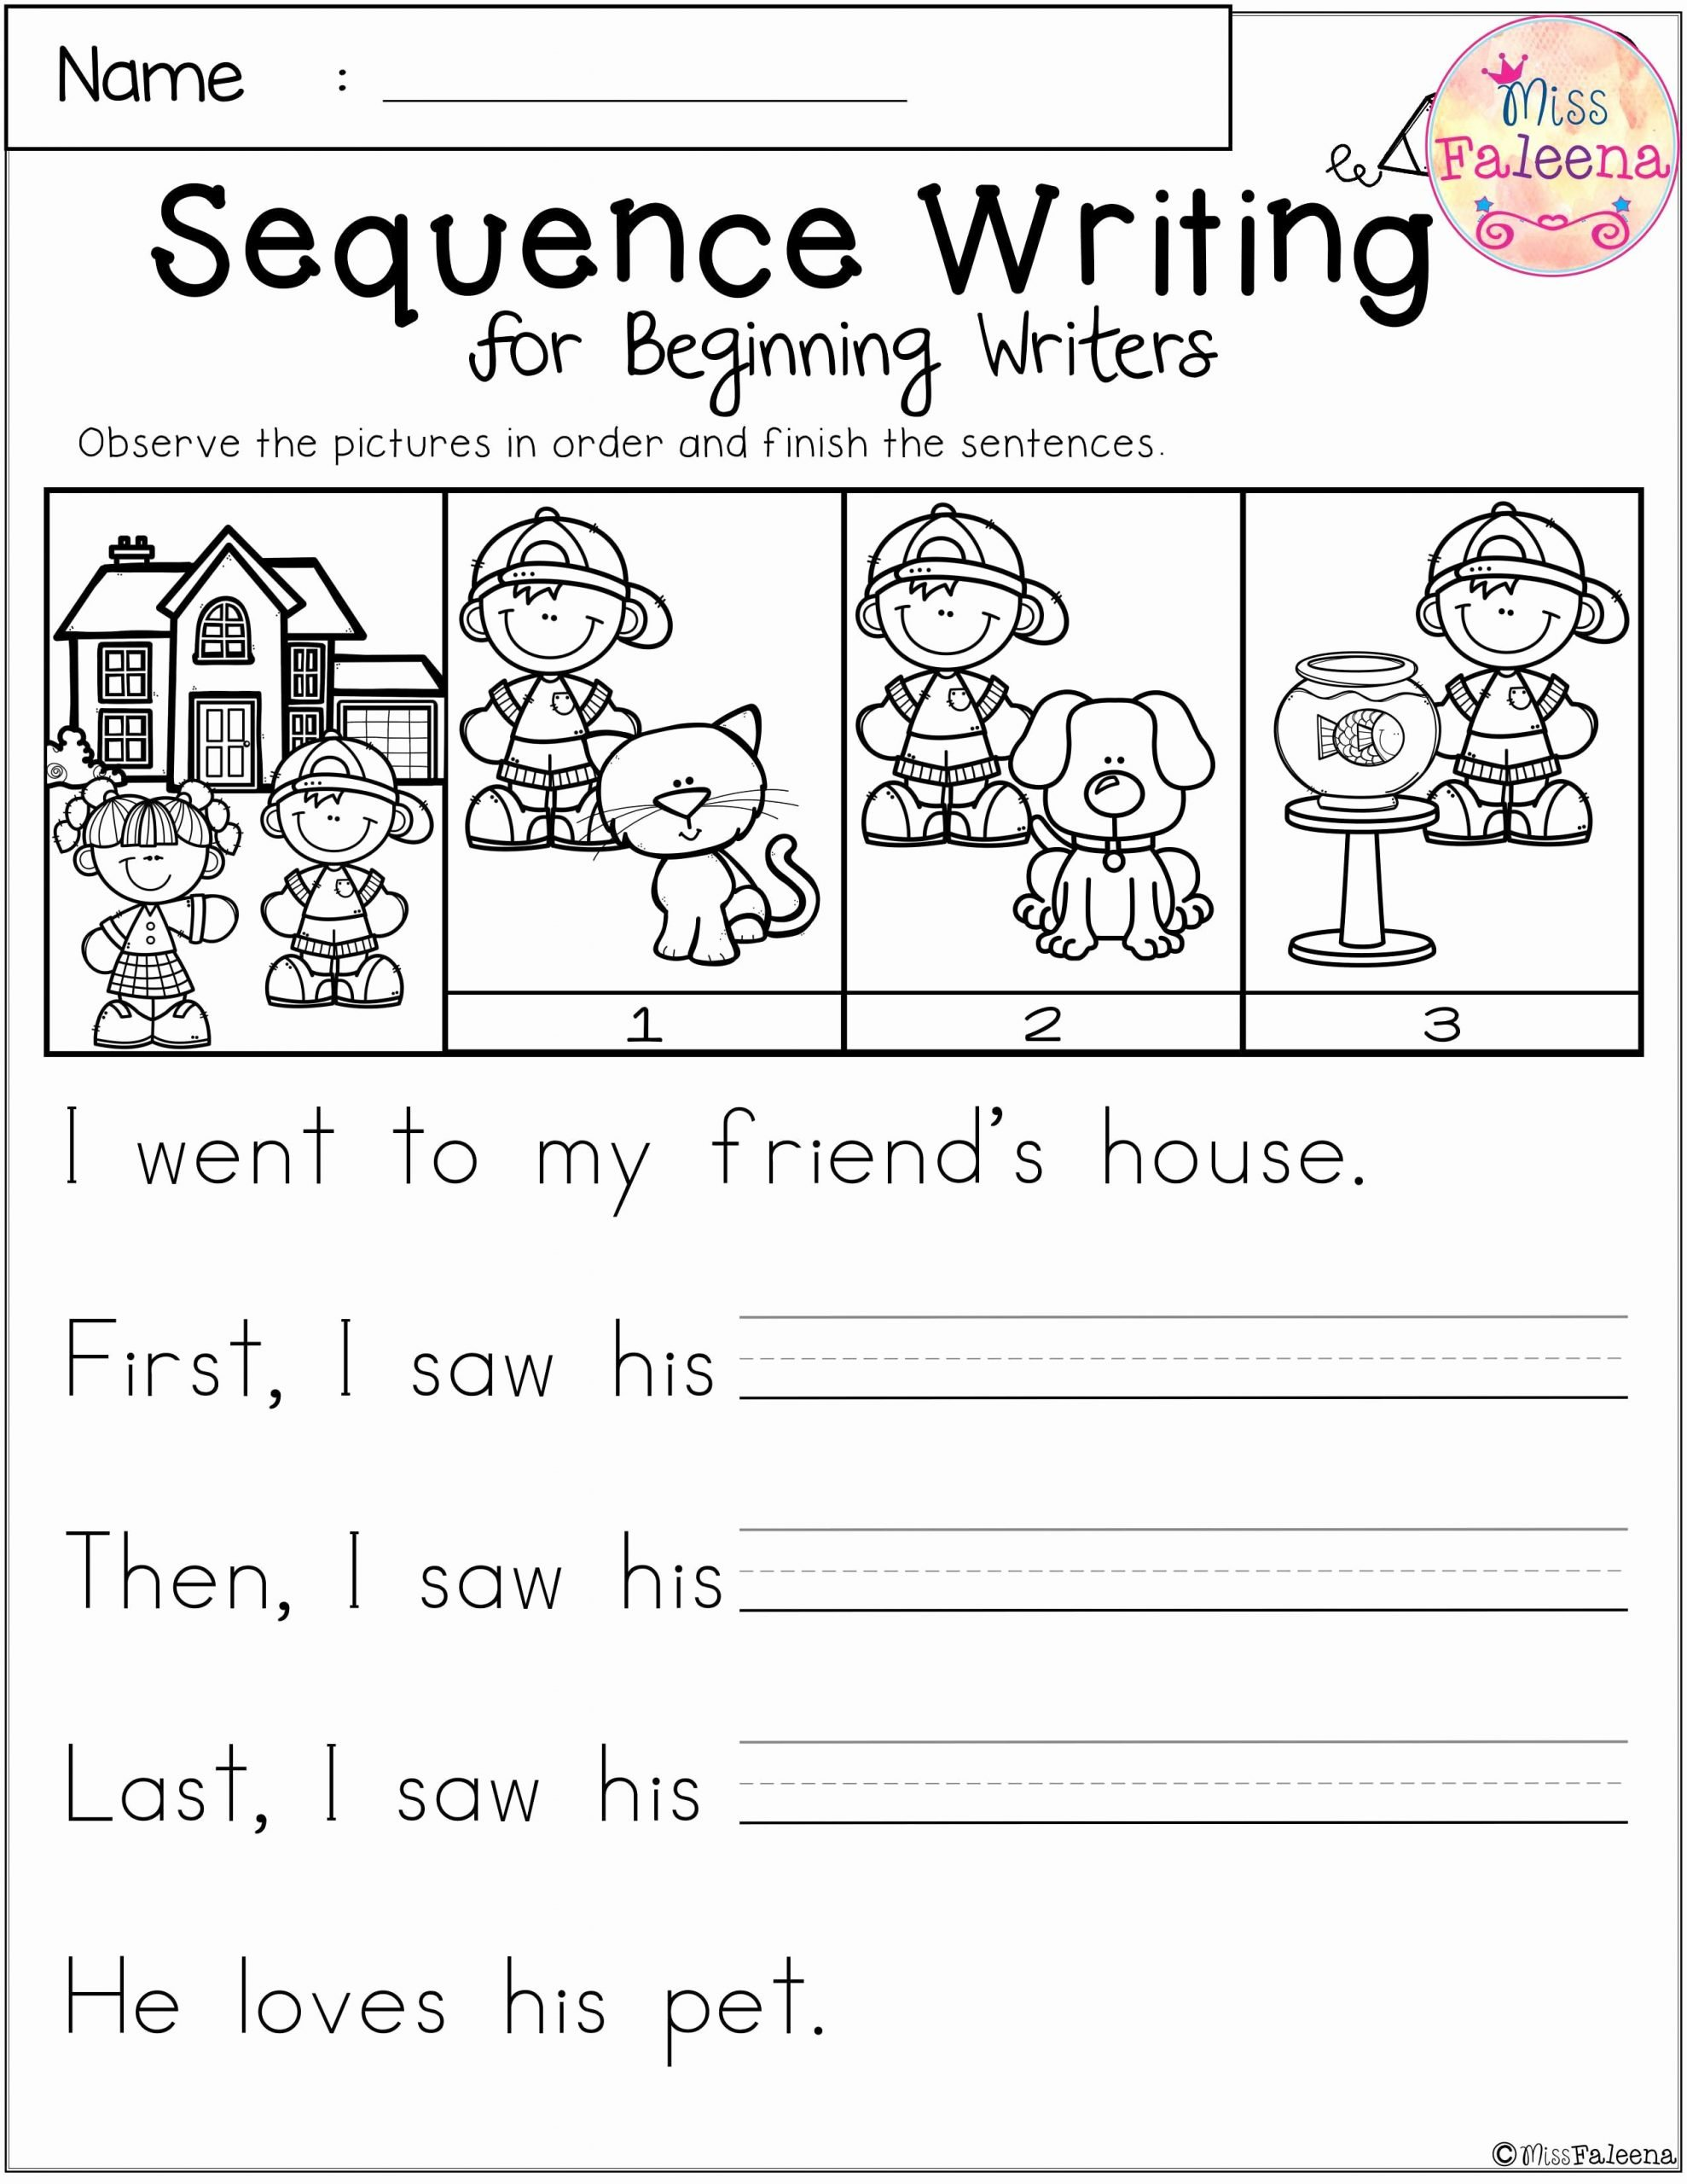 Free Sequencing Worksheets for Preschoolers New Free Sequence Writing for Beginning Writers